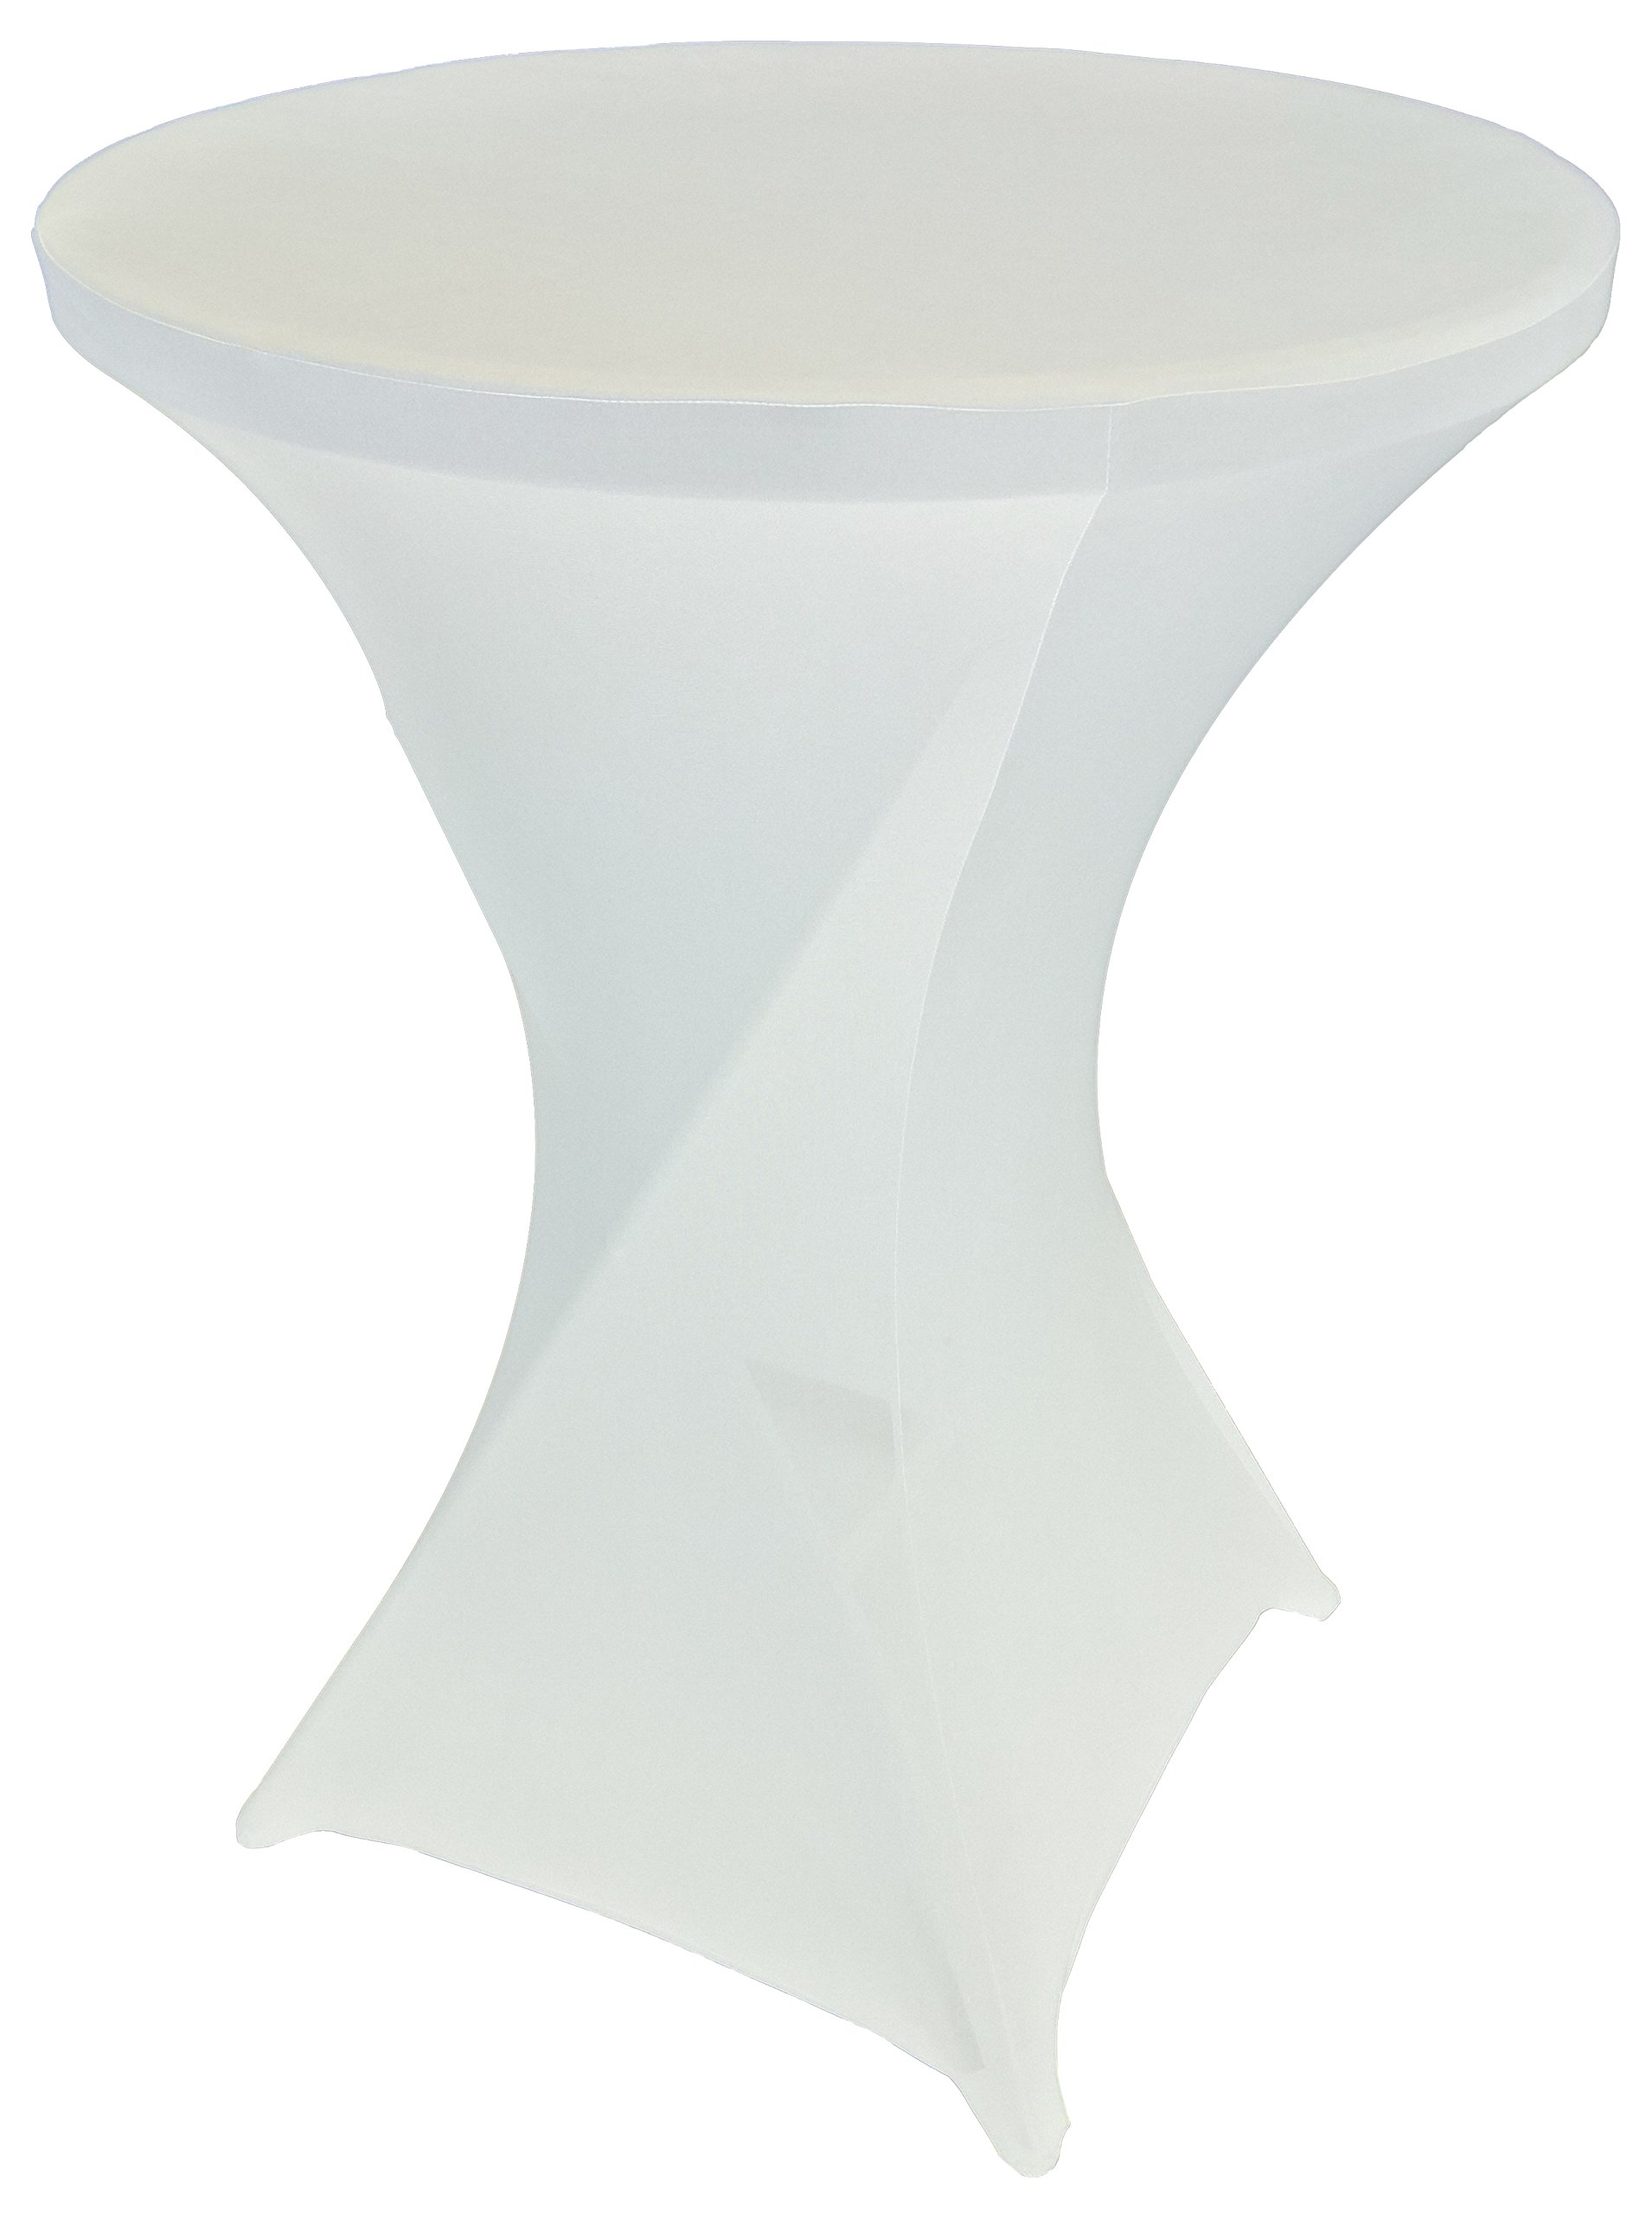 Goldstream Point White 32 Inch Round x 43 Inch Tall Spandex Cocktail Tablecloth Folding Cover Stretch